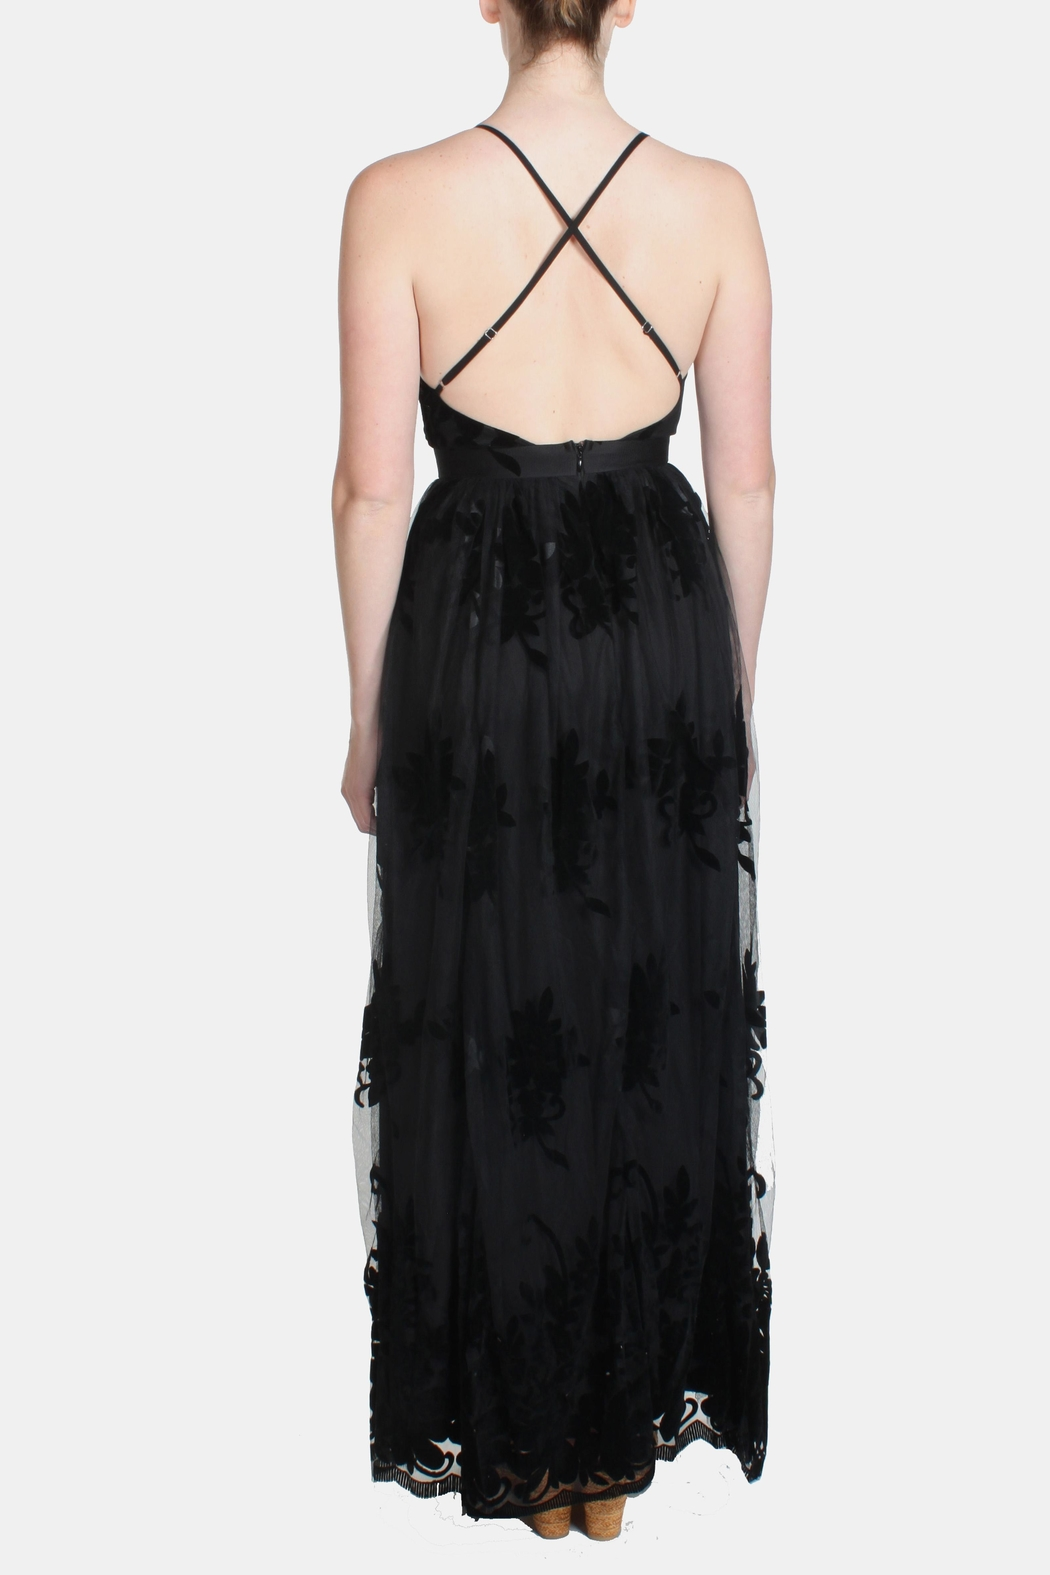 luxxel Black Monochrome Floral-Gown - Back Cropped Image